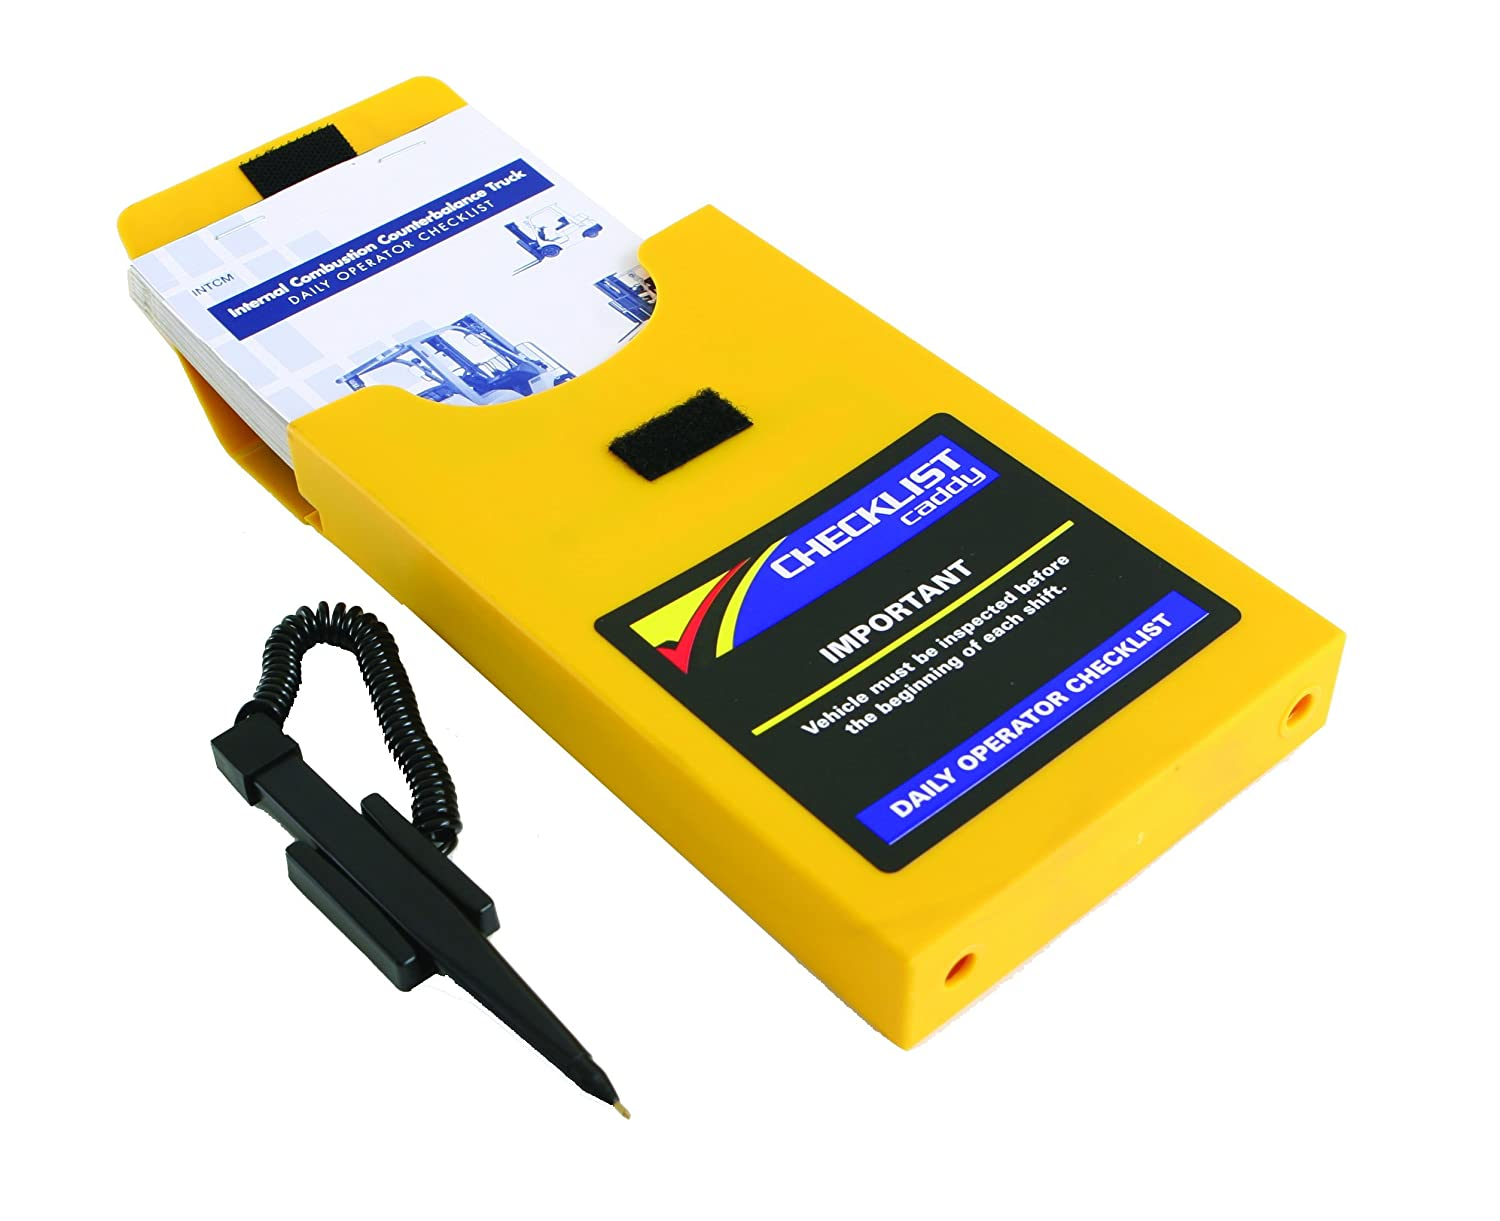 Replacement Checklist Caddy for Aerial Work Platform